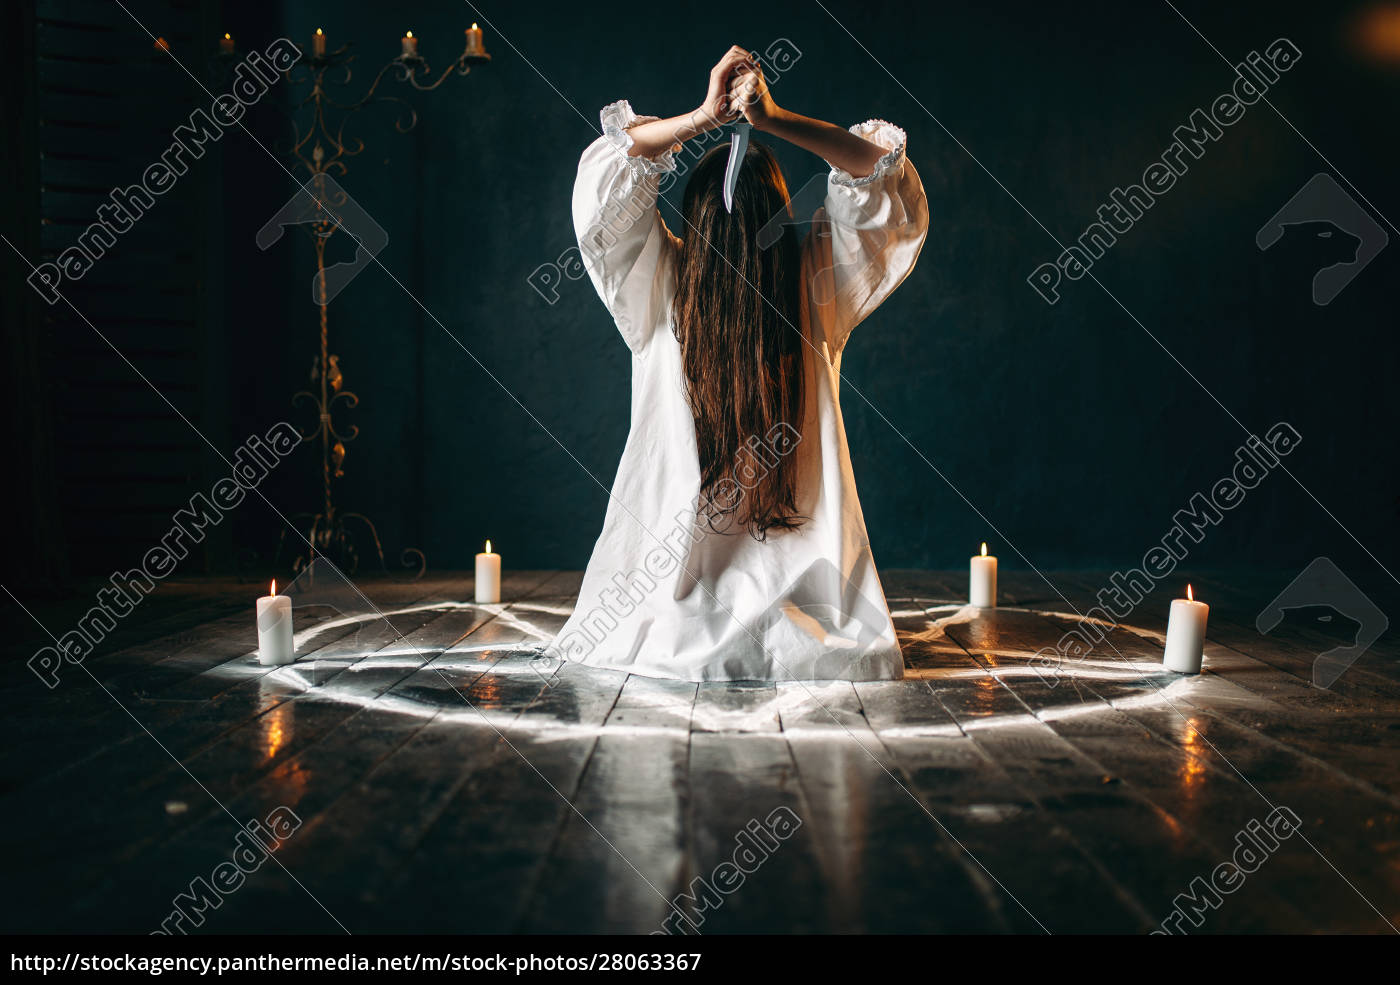 woman, with, knife, sitting, in, pentagram - 28063367